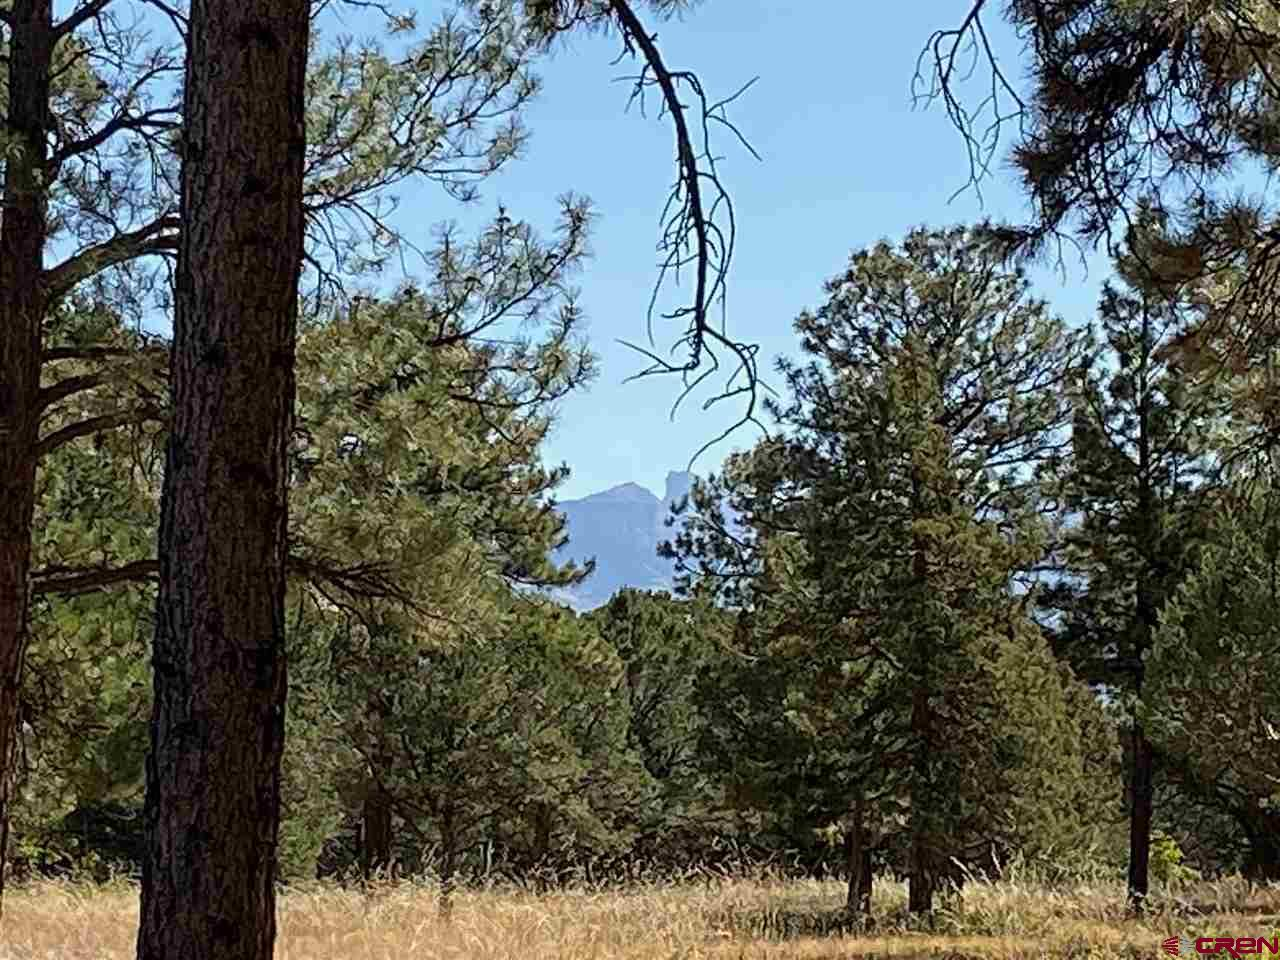 Oversized lot at 5.24+/- acres.  Nice lot with tree mitigation on the lower limbs. Great ground level views of the mountains and mesas and tremendous 2nd story views of the Mountains.  Just a short distance from the Divide Ranch and Club golf course that has unbelievable views from each hole, great clubhouse with bar/restuarant and driving range.  This lot is mostly level with a variety of home sites.  The winter alpen glow on the Cimarron Mountains is something to see!!  The sky turrns red/orange for a delightful experience.  The utilities are:  San Miguel Power to the lot line, Blackhills natural gas to the lot line, land line phone to the lot line and water tap paid and to lot line.  It will need an engineered septic.